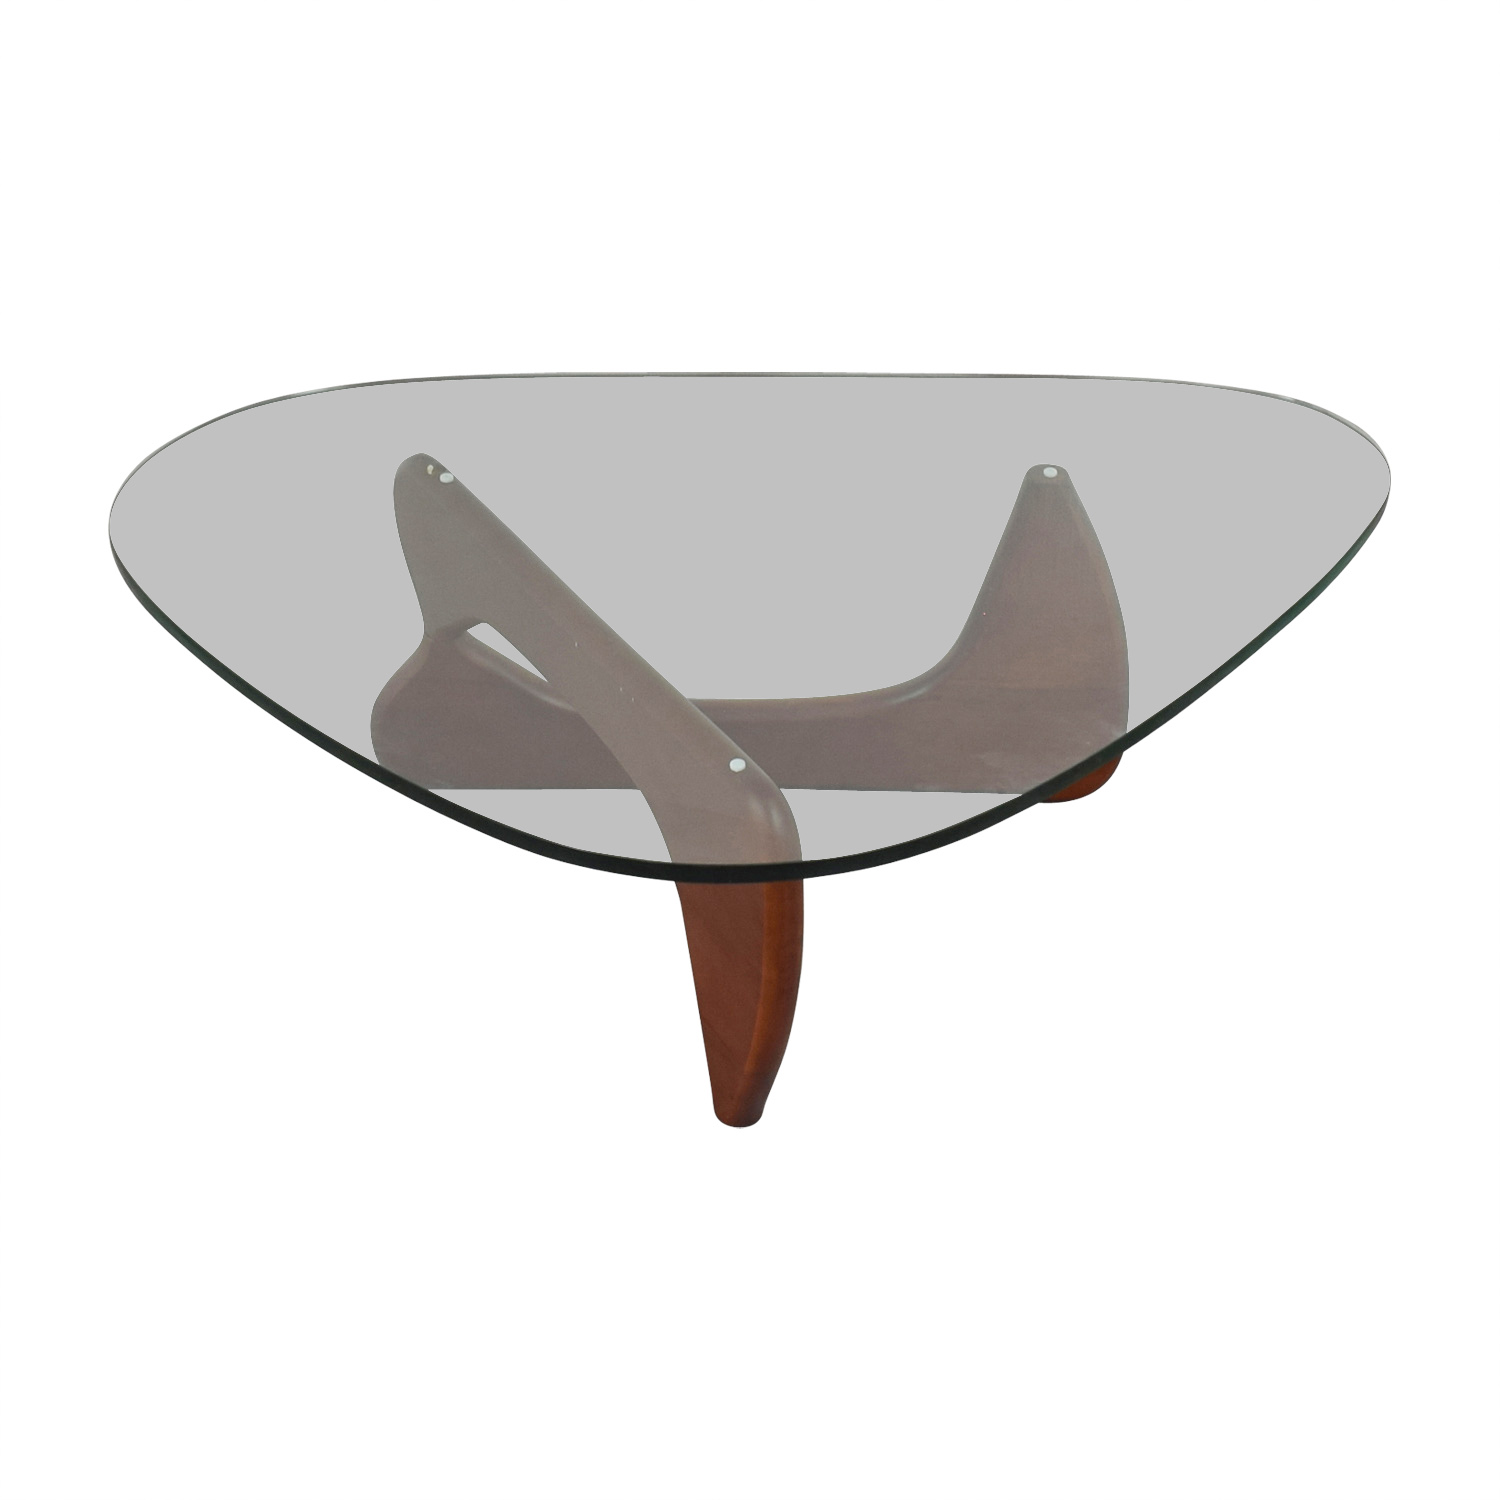 Modway Modway Isamu Noguchi-inspired Triangle Glass Coffee Table with Cherry Wood